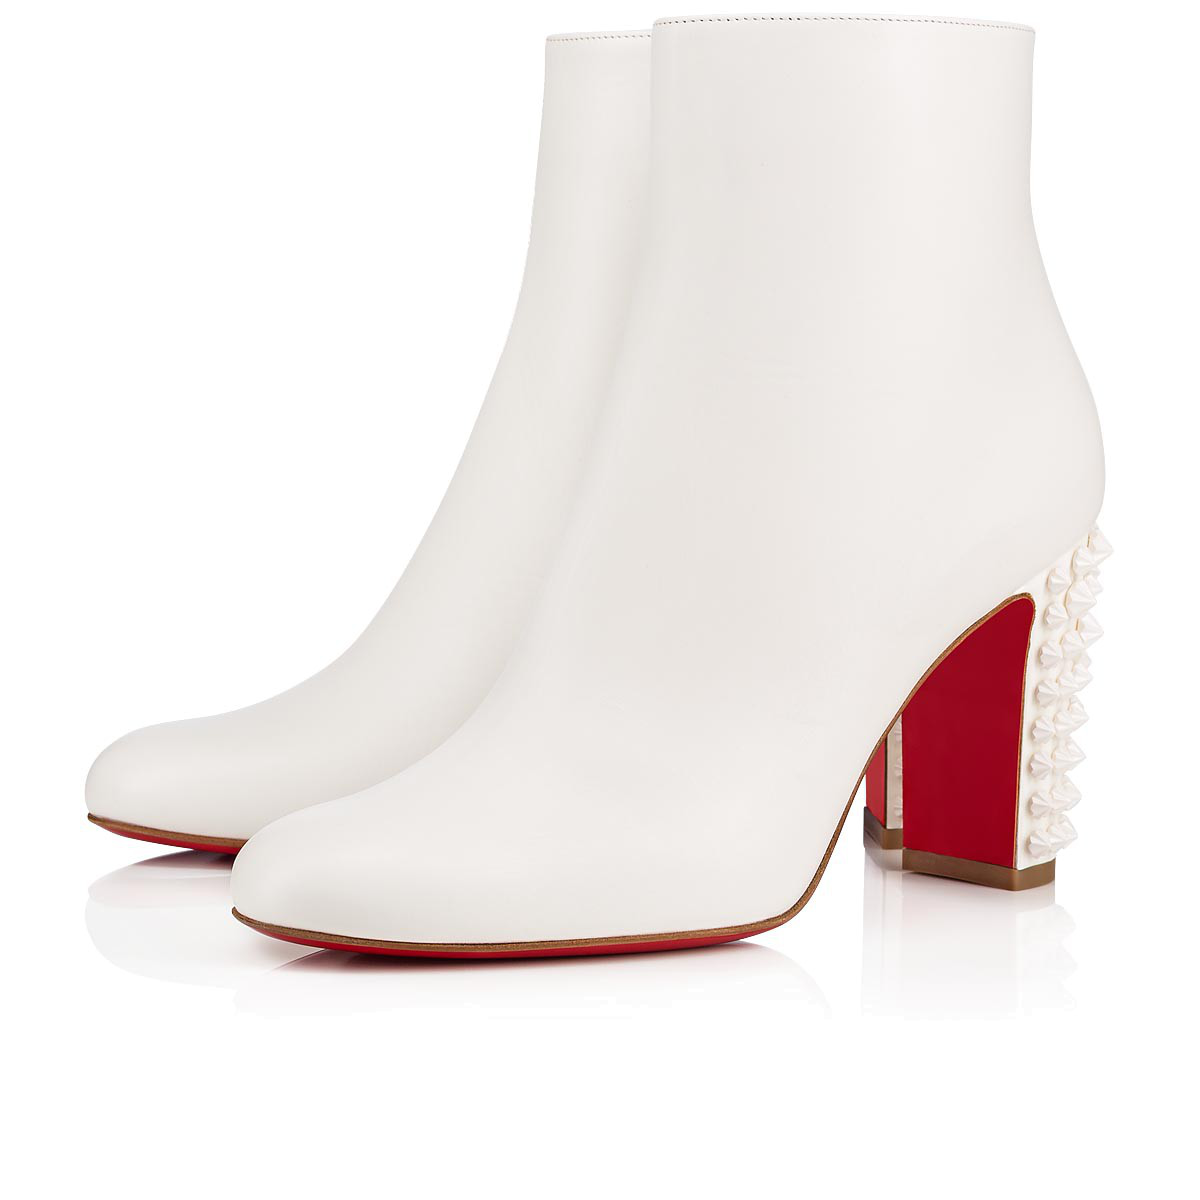 262ddcf44057 Christian Louboutin Suzi Folk 85 Studded Leather Booties In Snow Snow